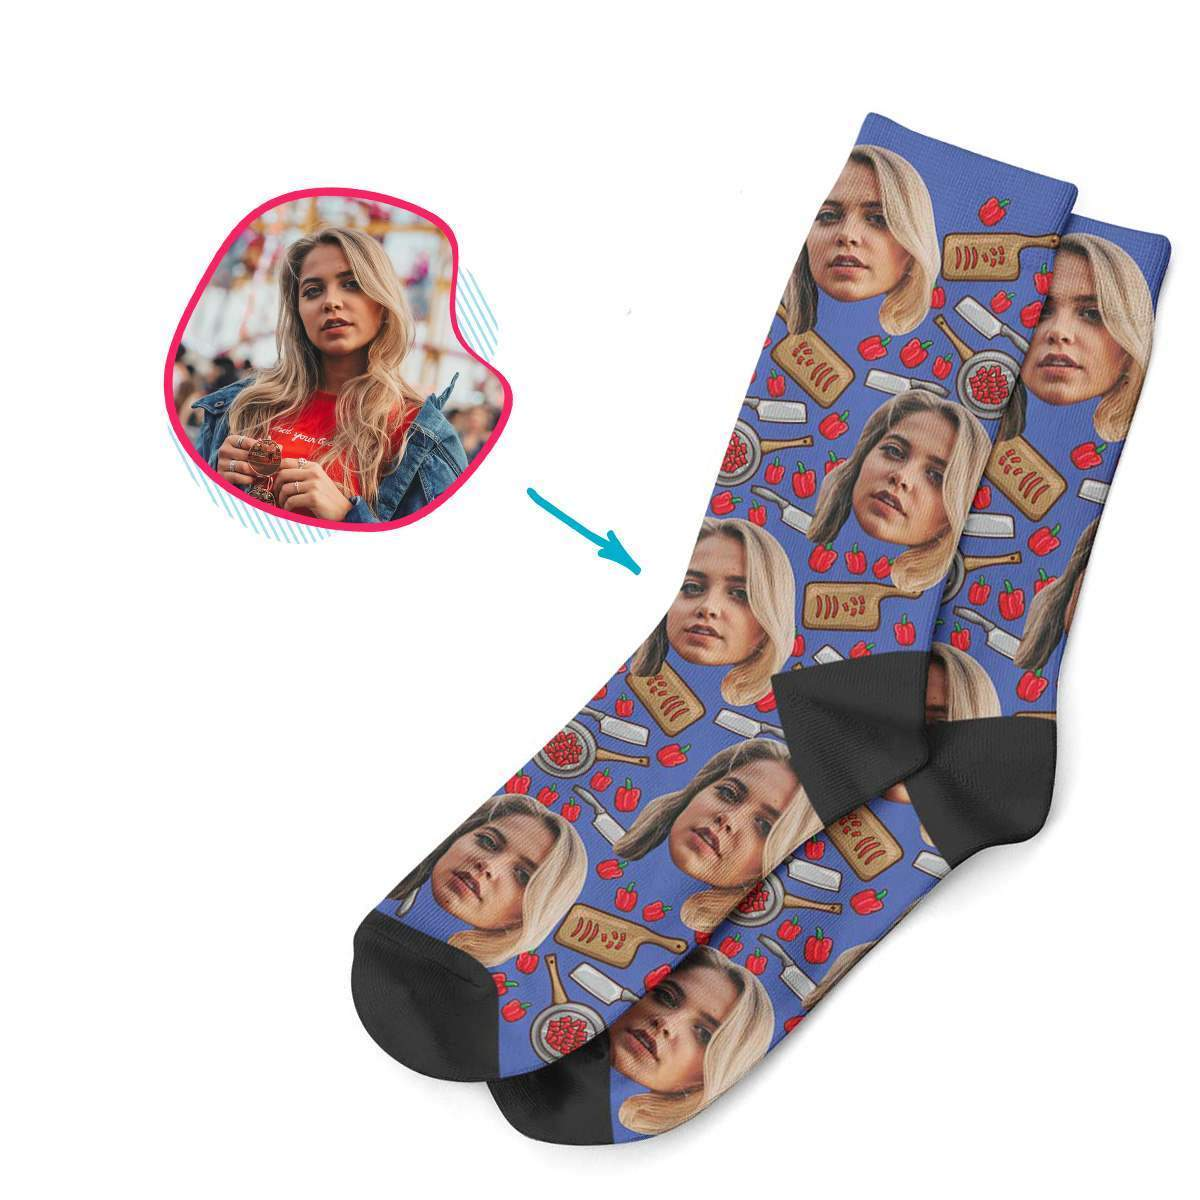 darkblue Сooking socks personalized with photo of face printed on them